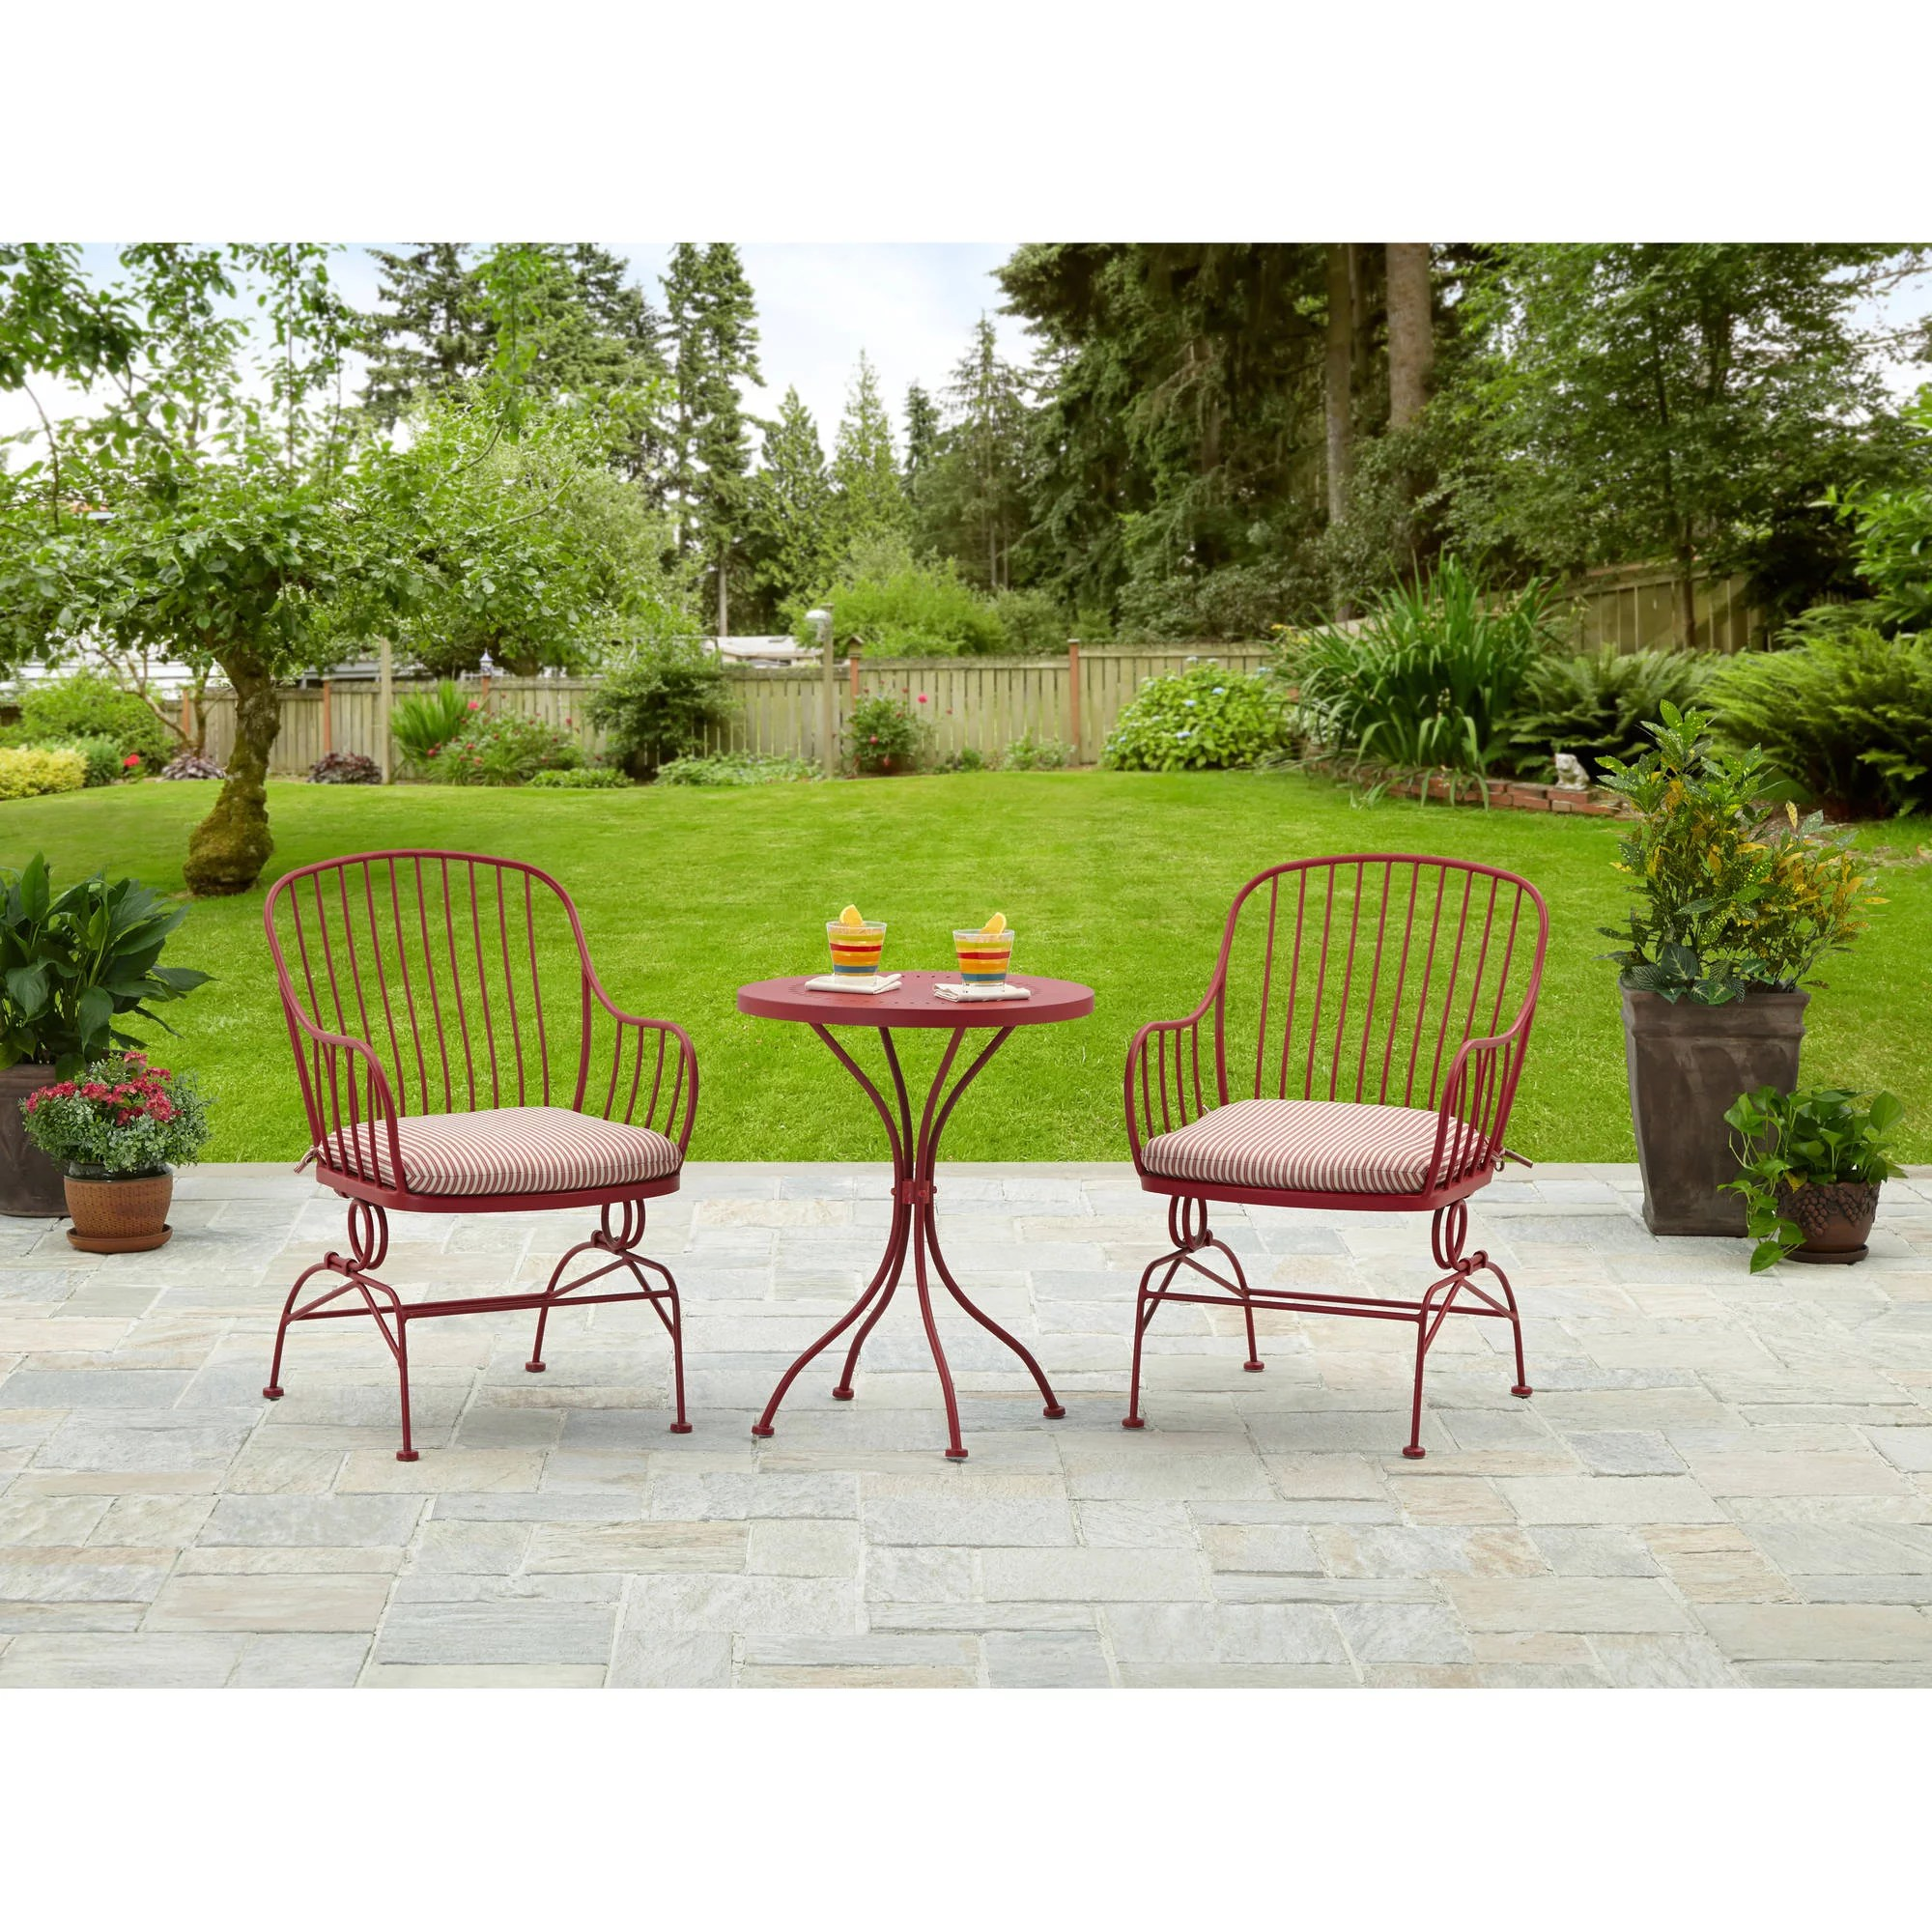 Outdoor Table And Chairs Sale